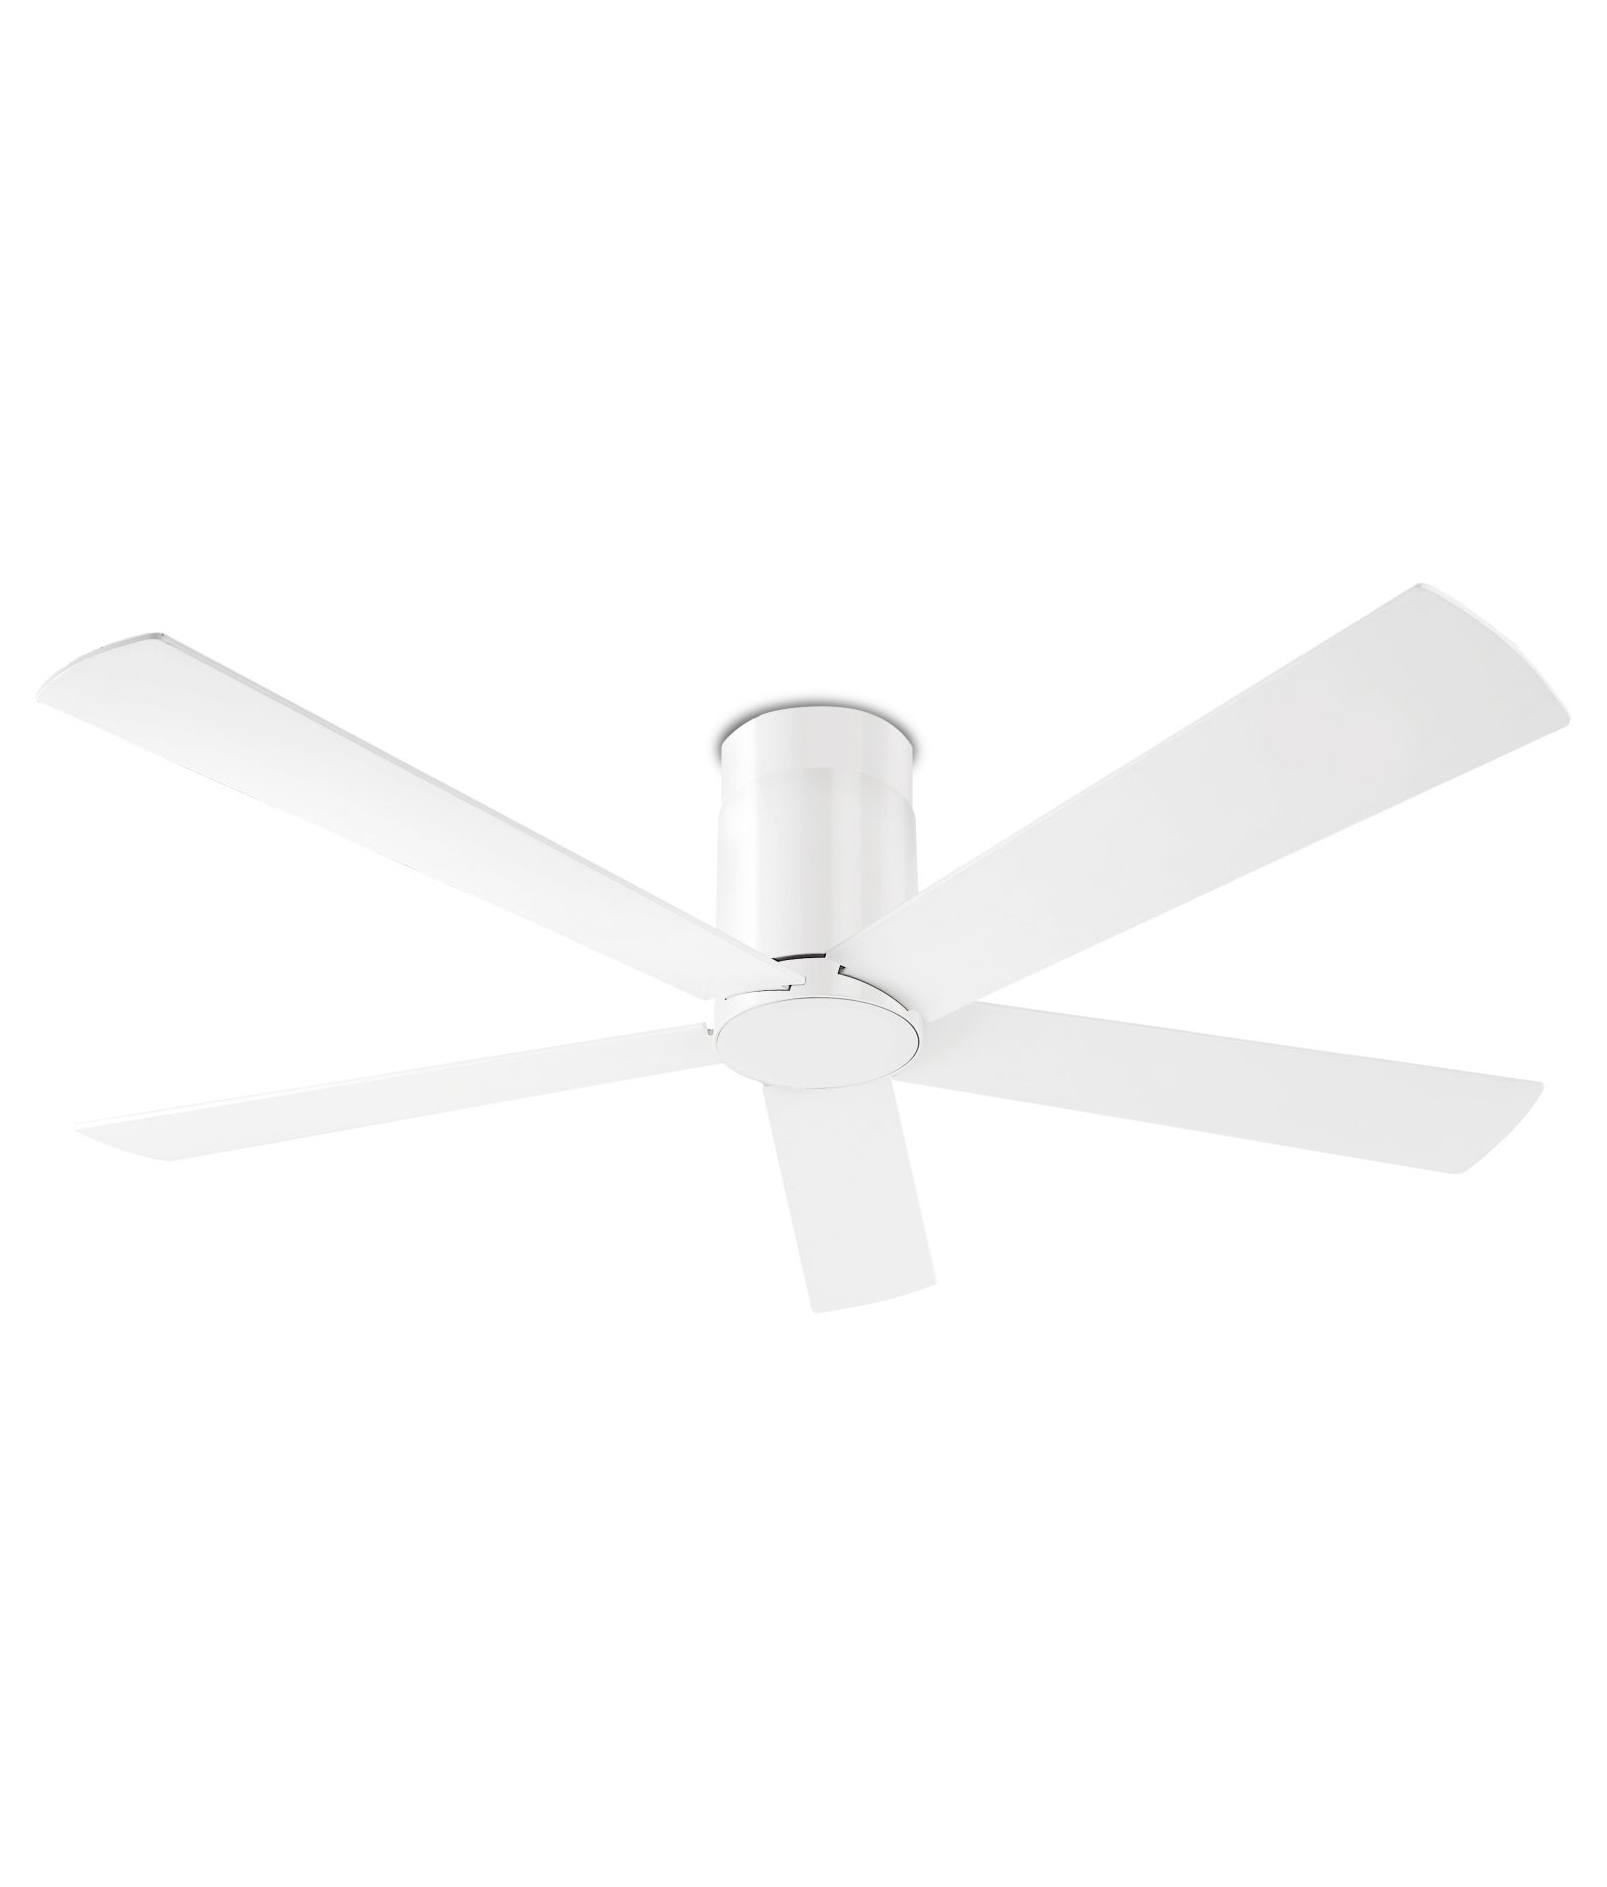 White Or Grey Ceiling Fan With Reversible Blades And